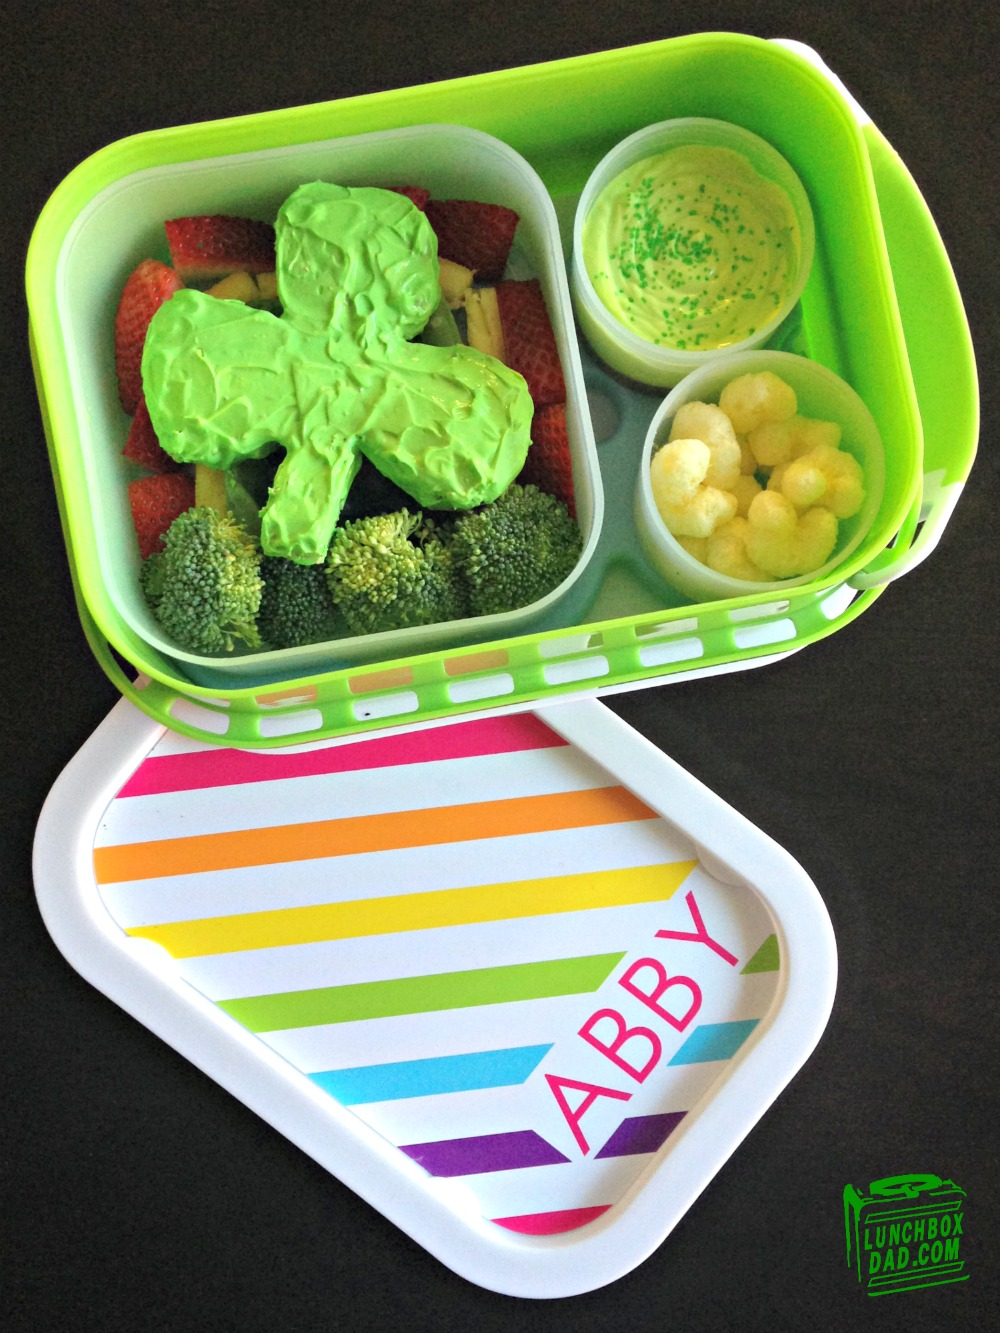 St. Patrick's Day kid's lunch